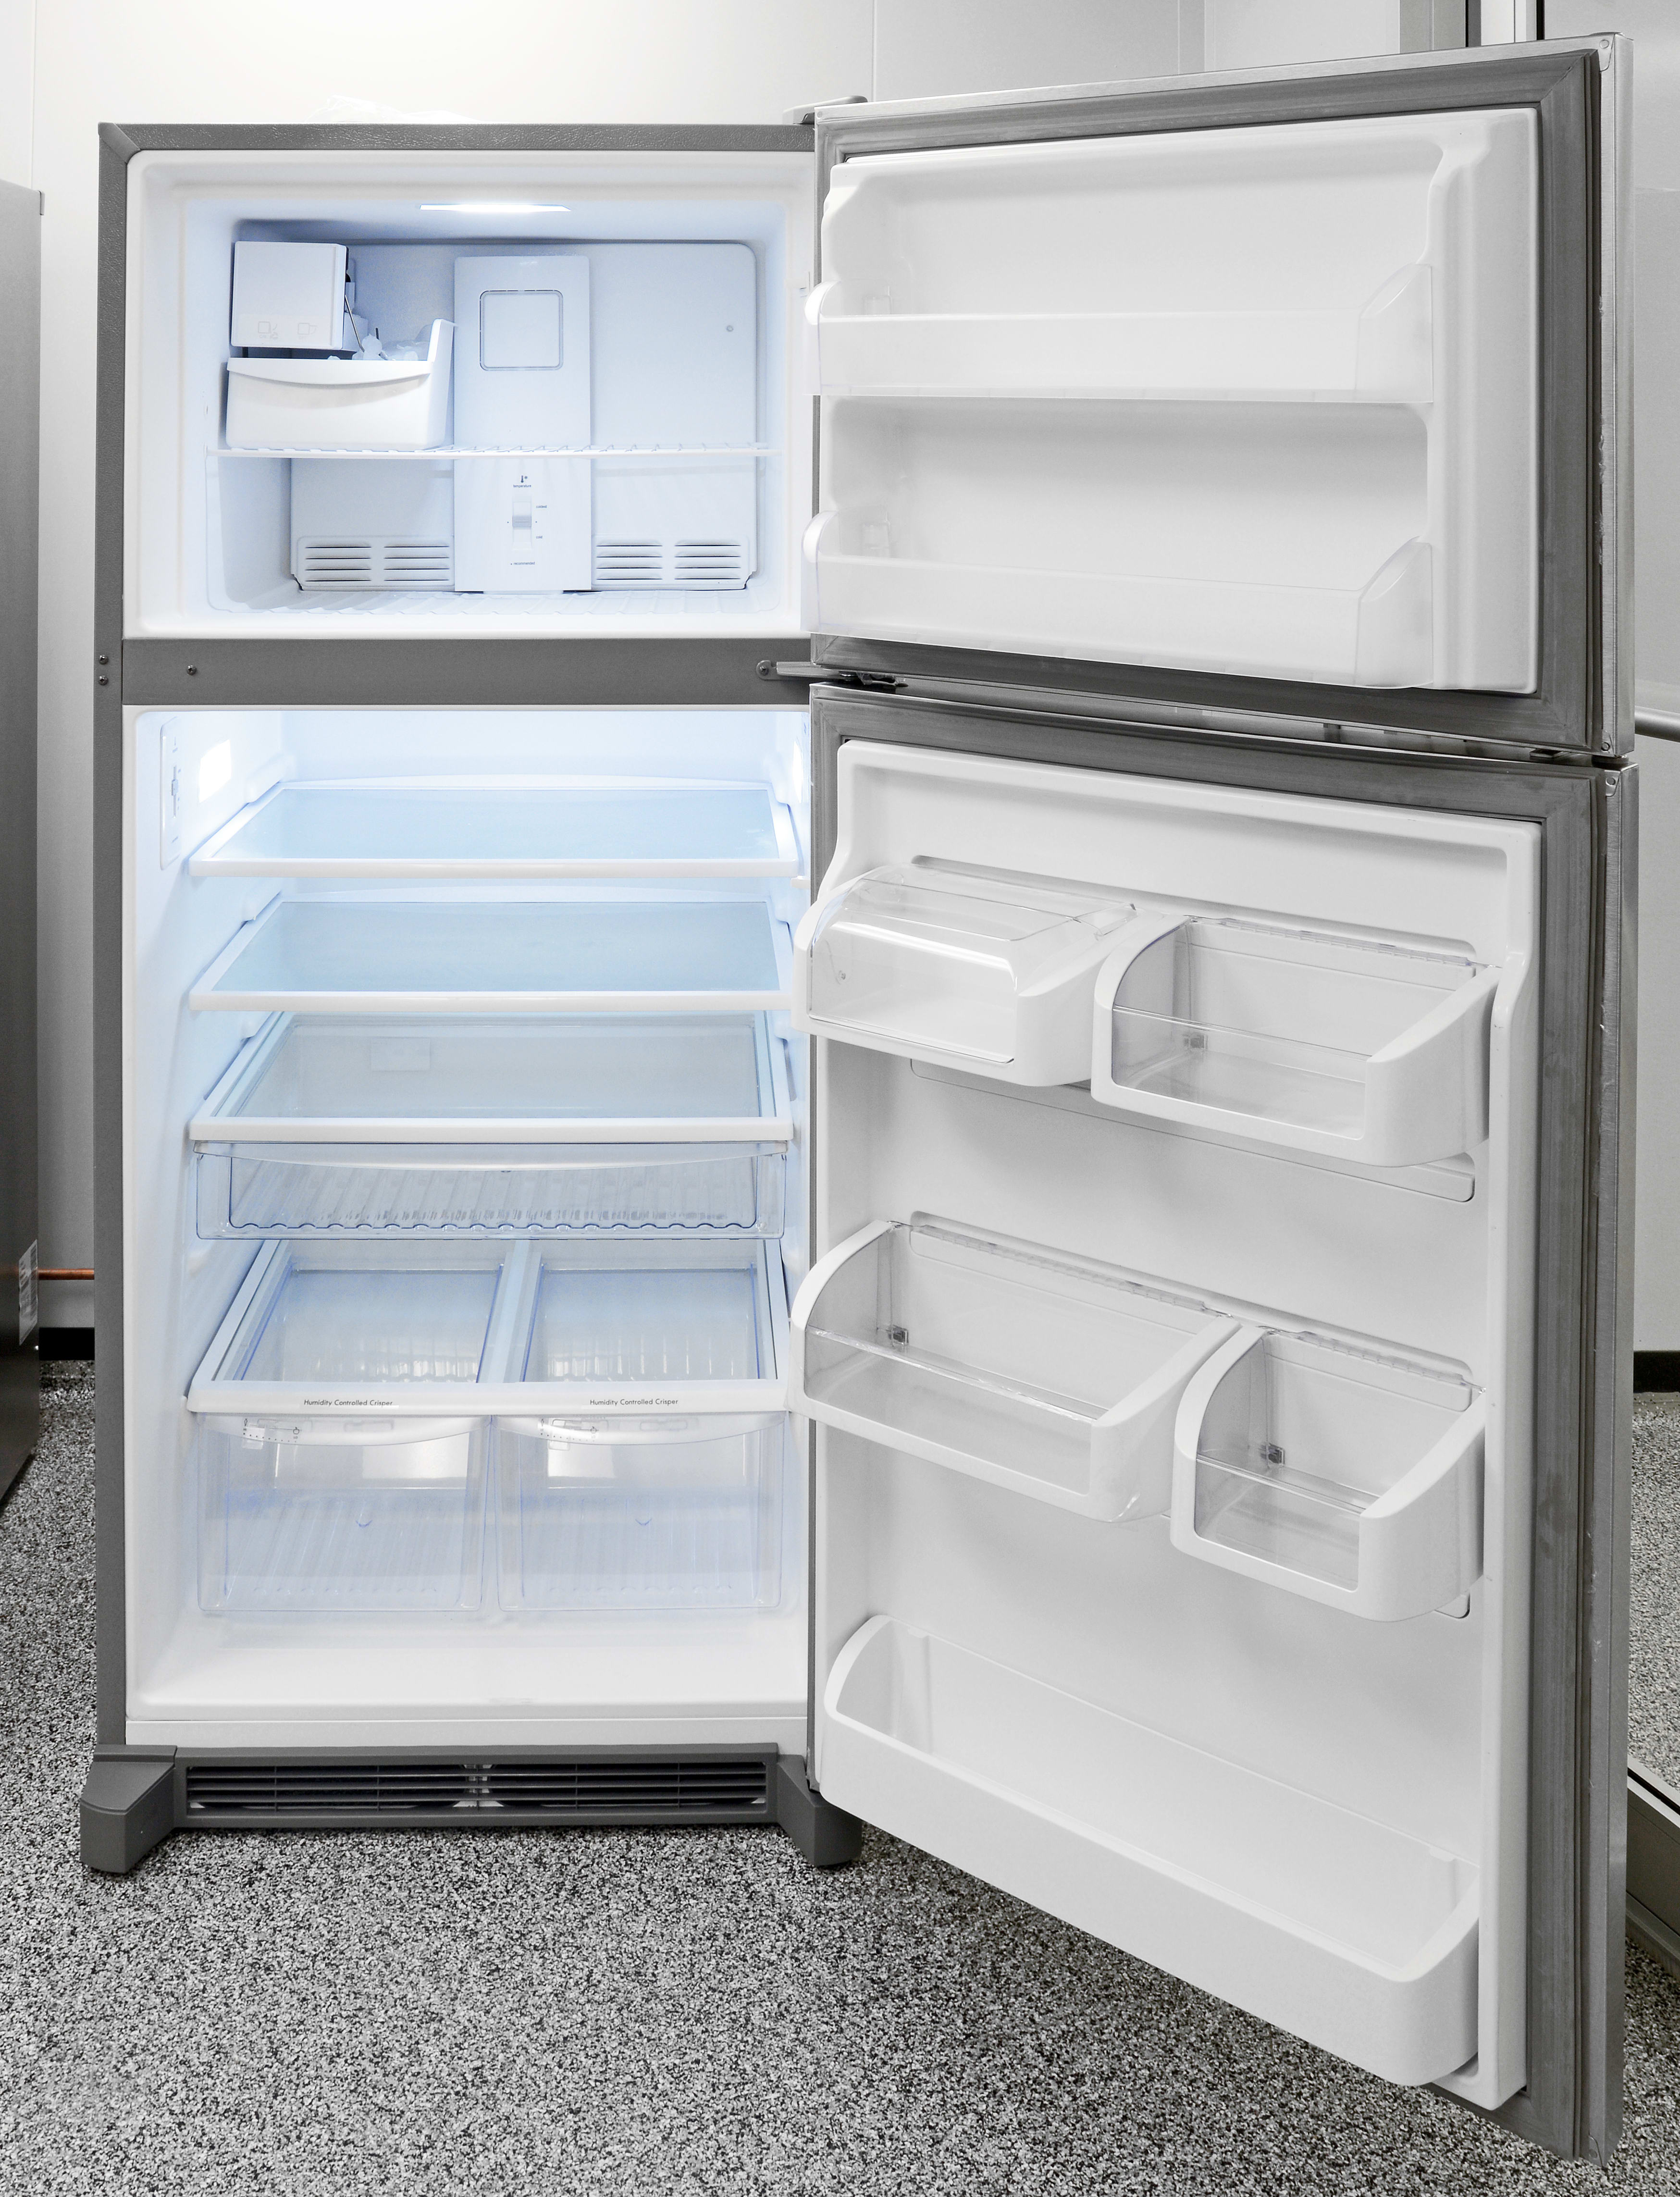 The Kenmore 70623 is big, well-lit, and exceptionally efficient.